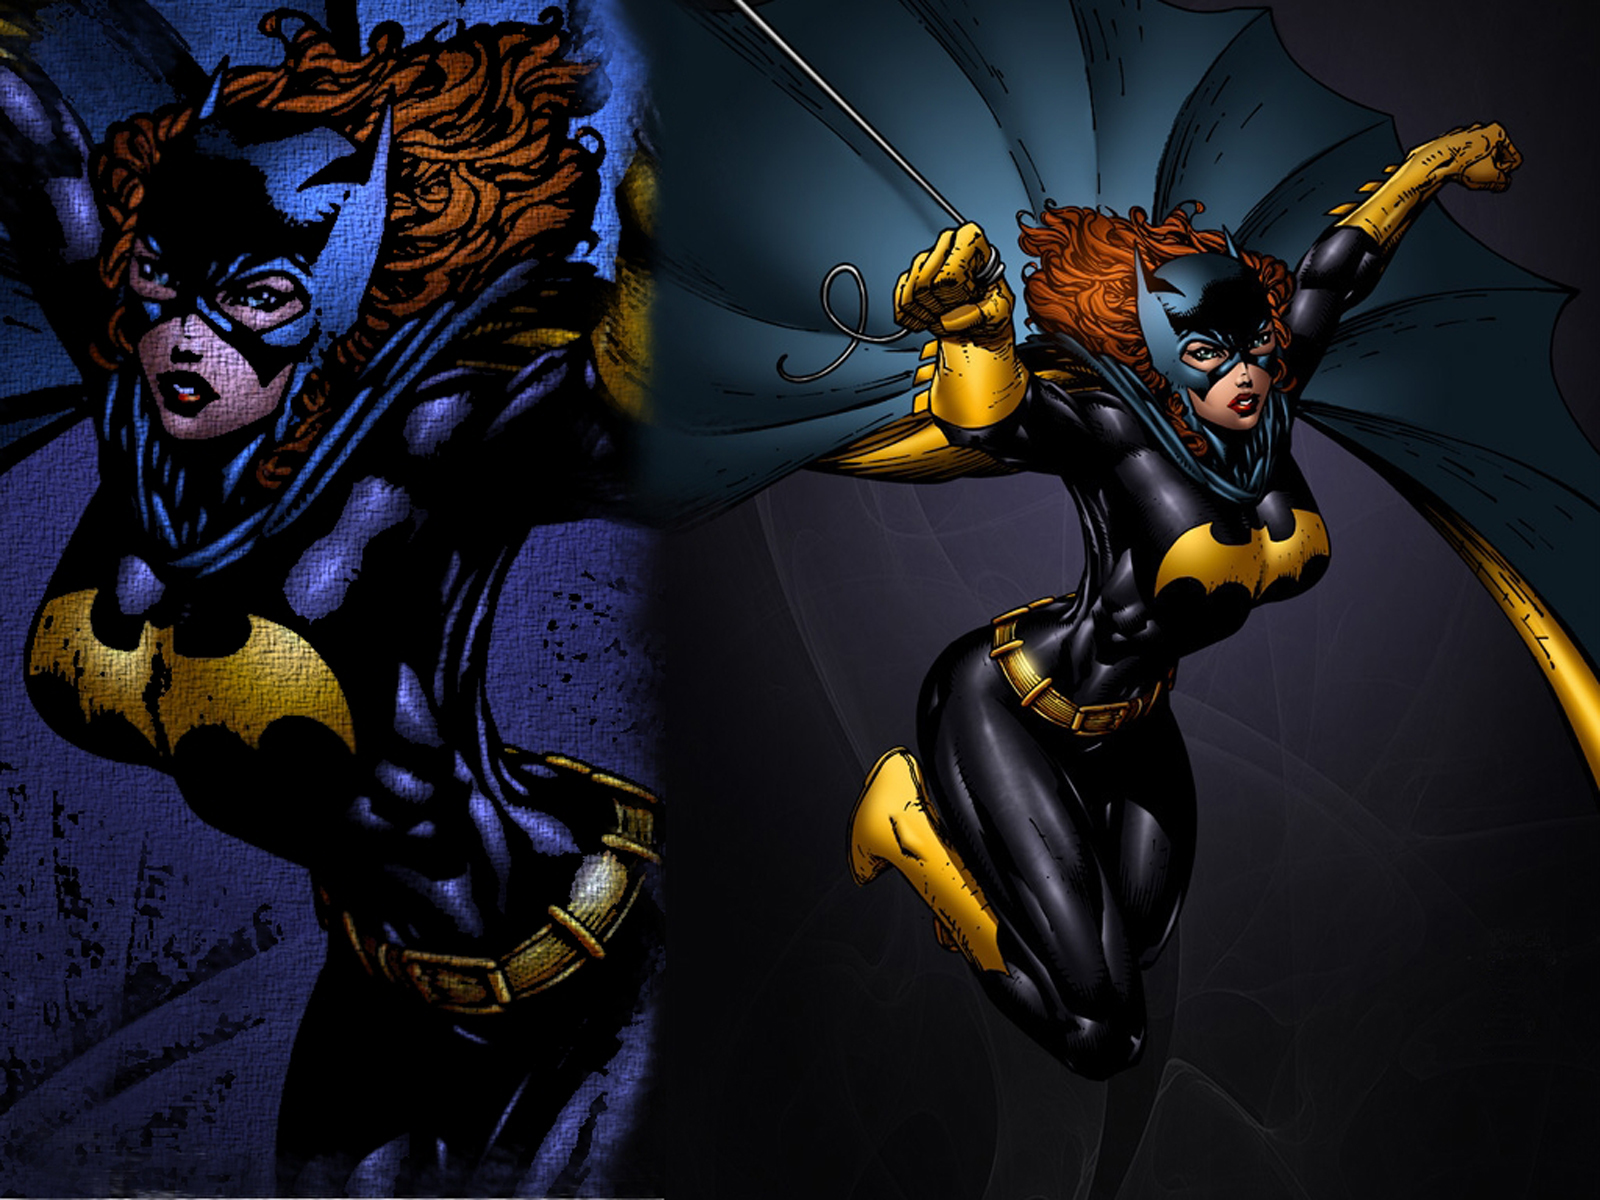 dc comics comics Batgirl HD Wallpaper